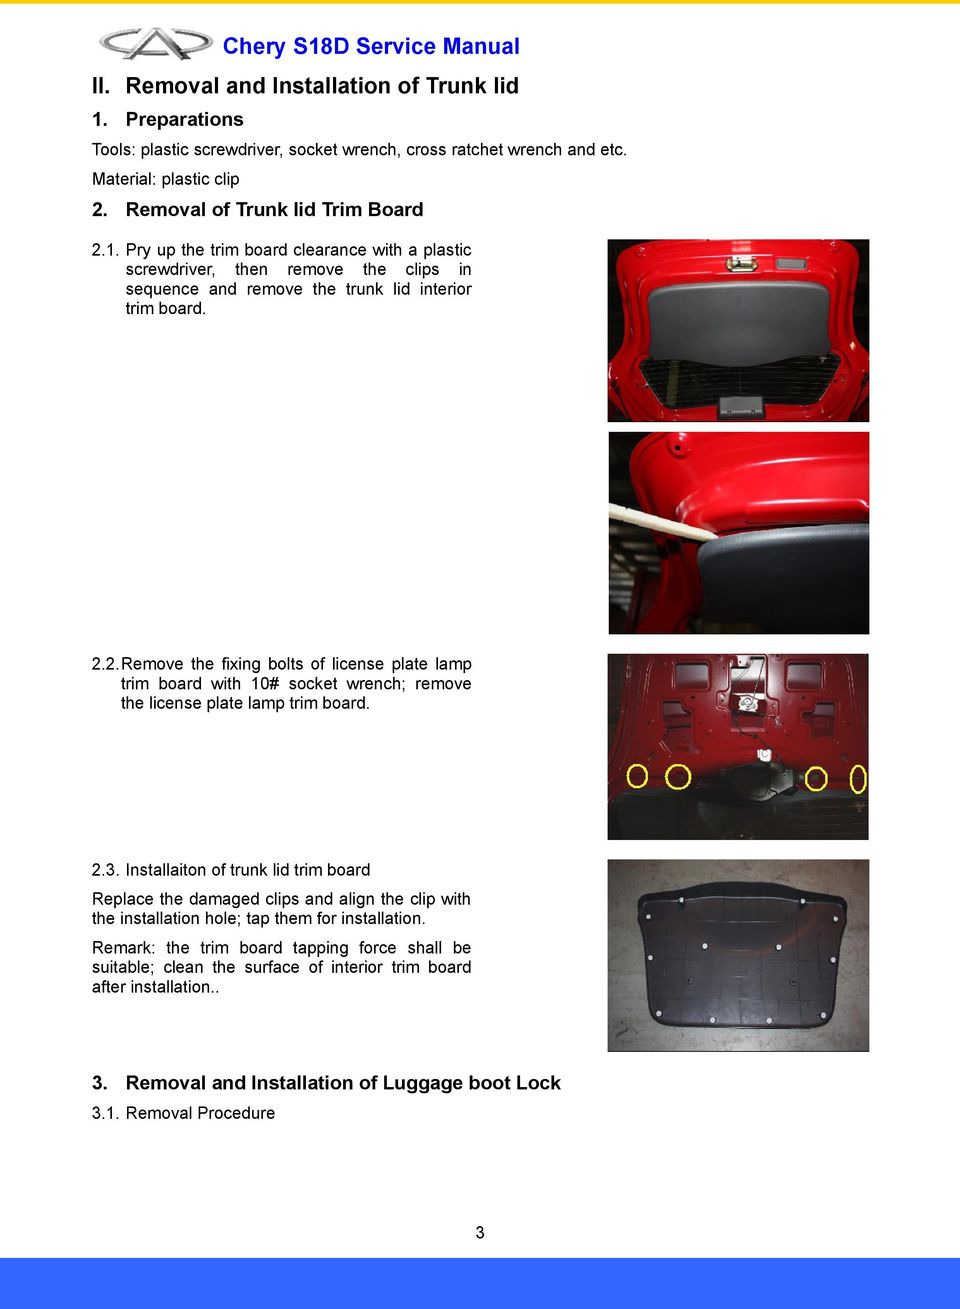 Installaiton of trunk lid trim board Replace the damaged clips and align the clip with the installation hole; tap them for installation.